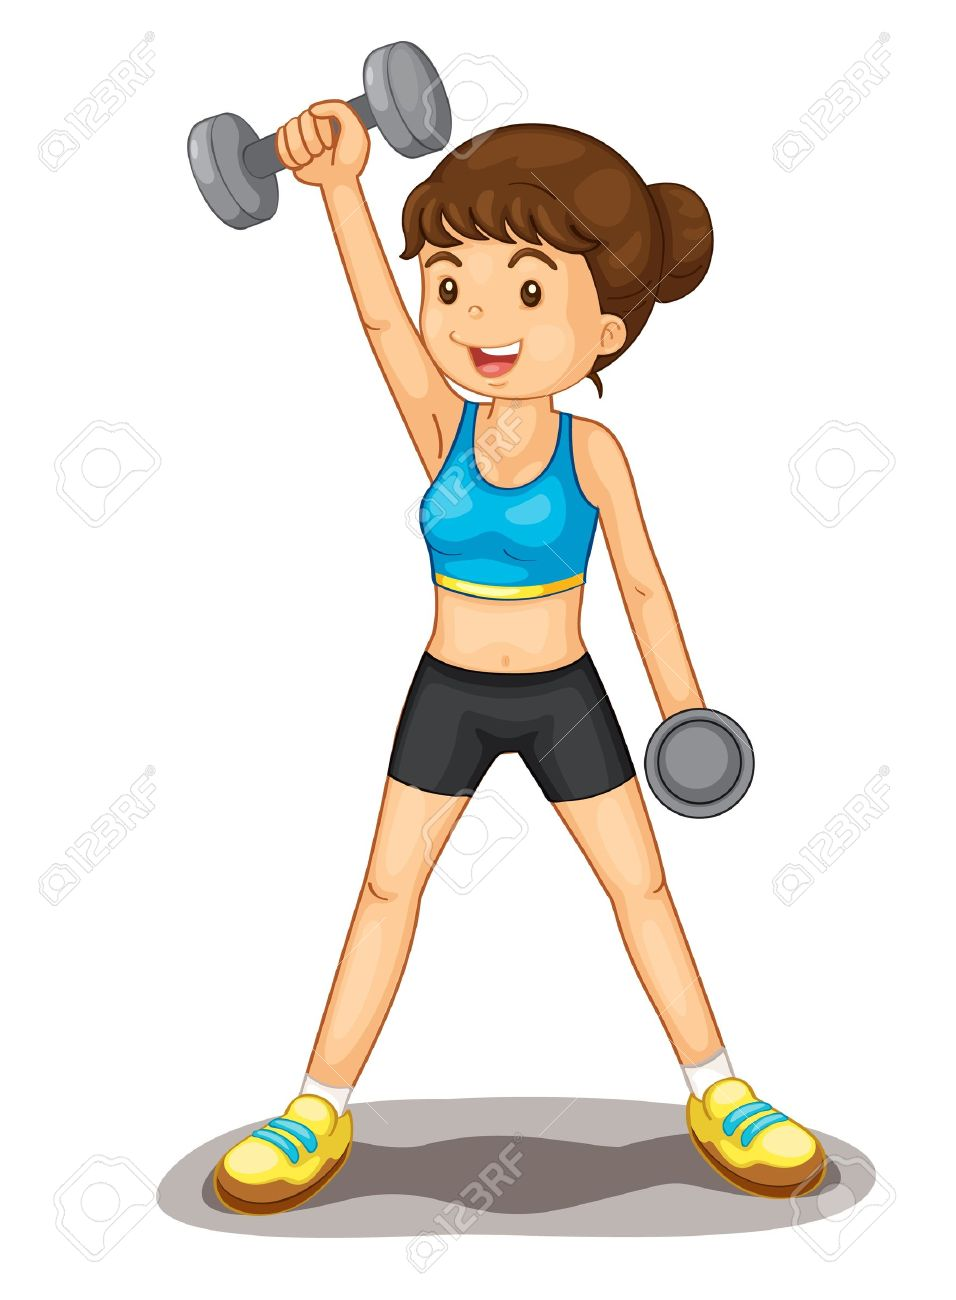 Clipart exercise pictures picture freeuse stock exercise, clipart) | Clipart Panda - Free Clipart Images picture freeuse stock